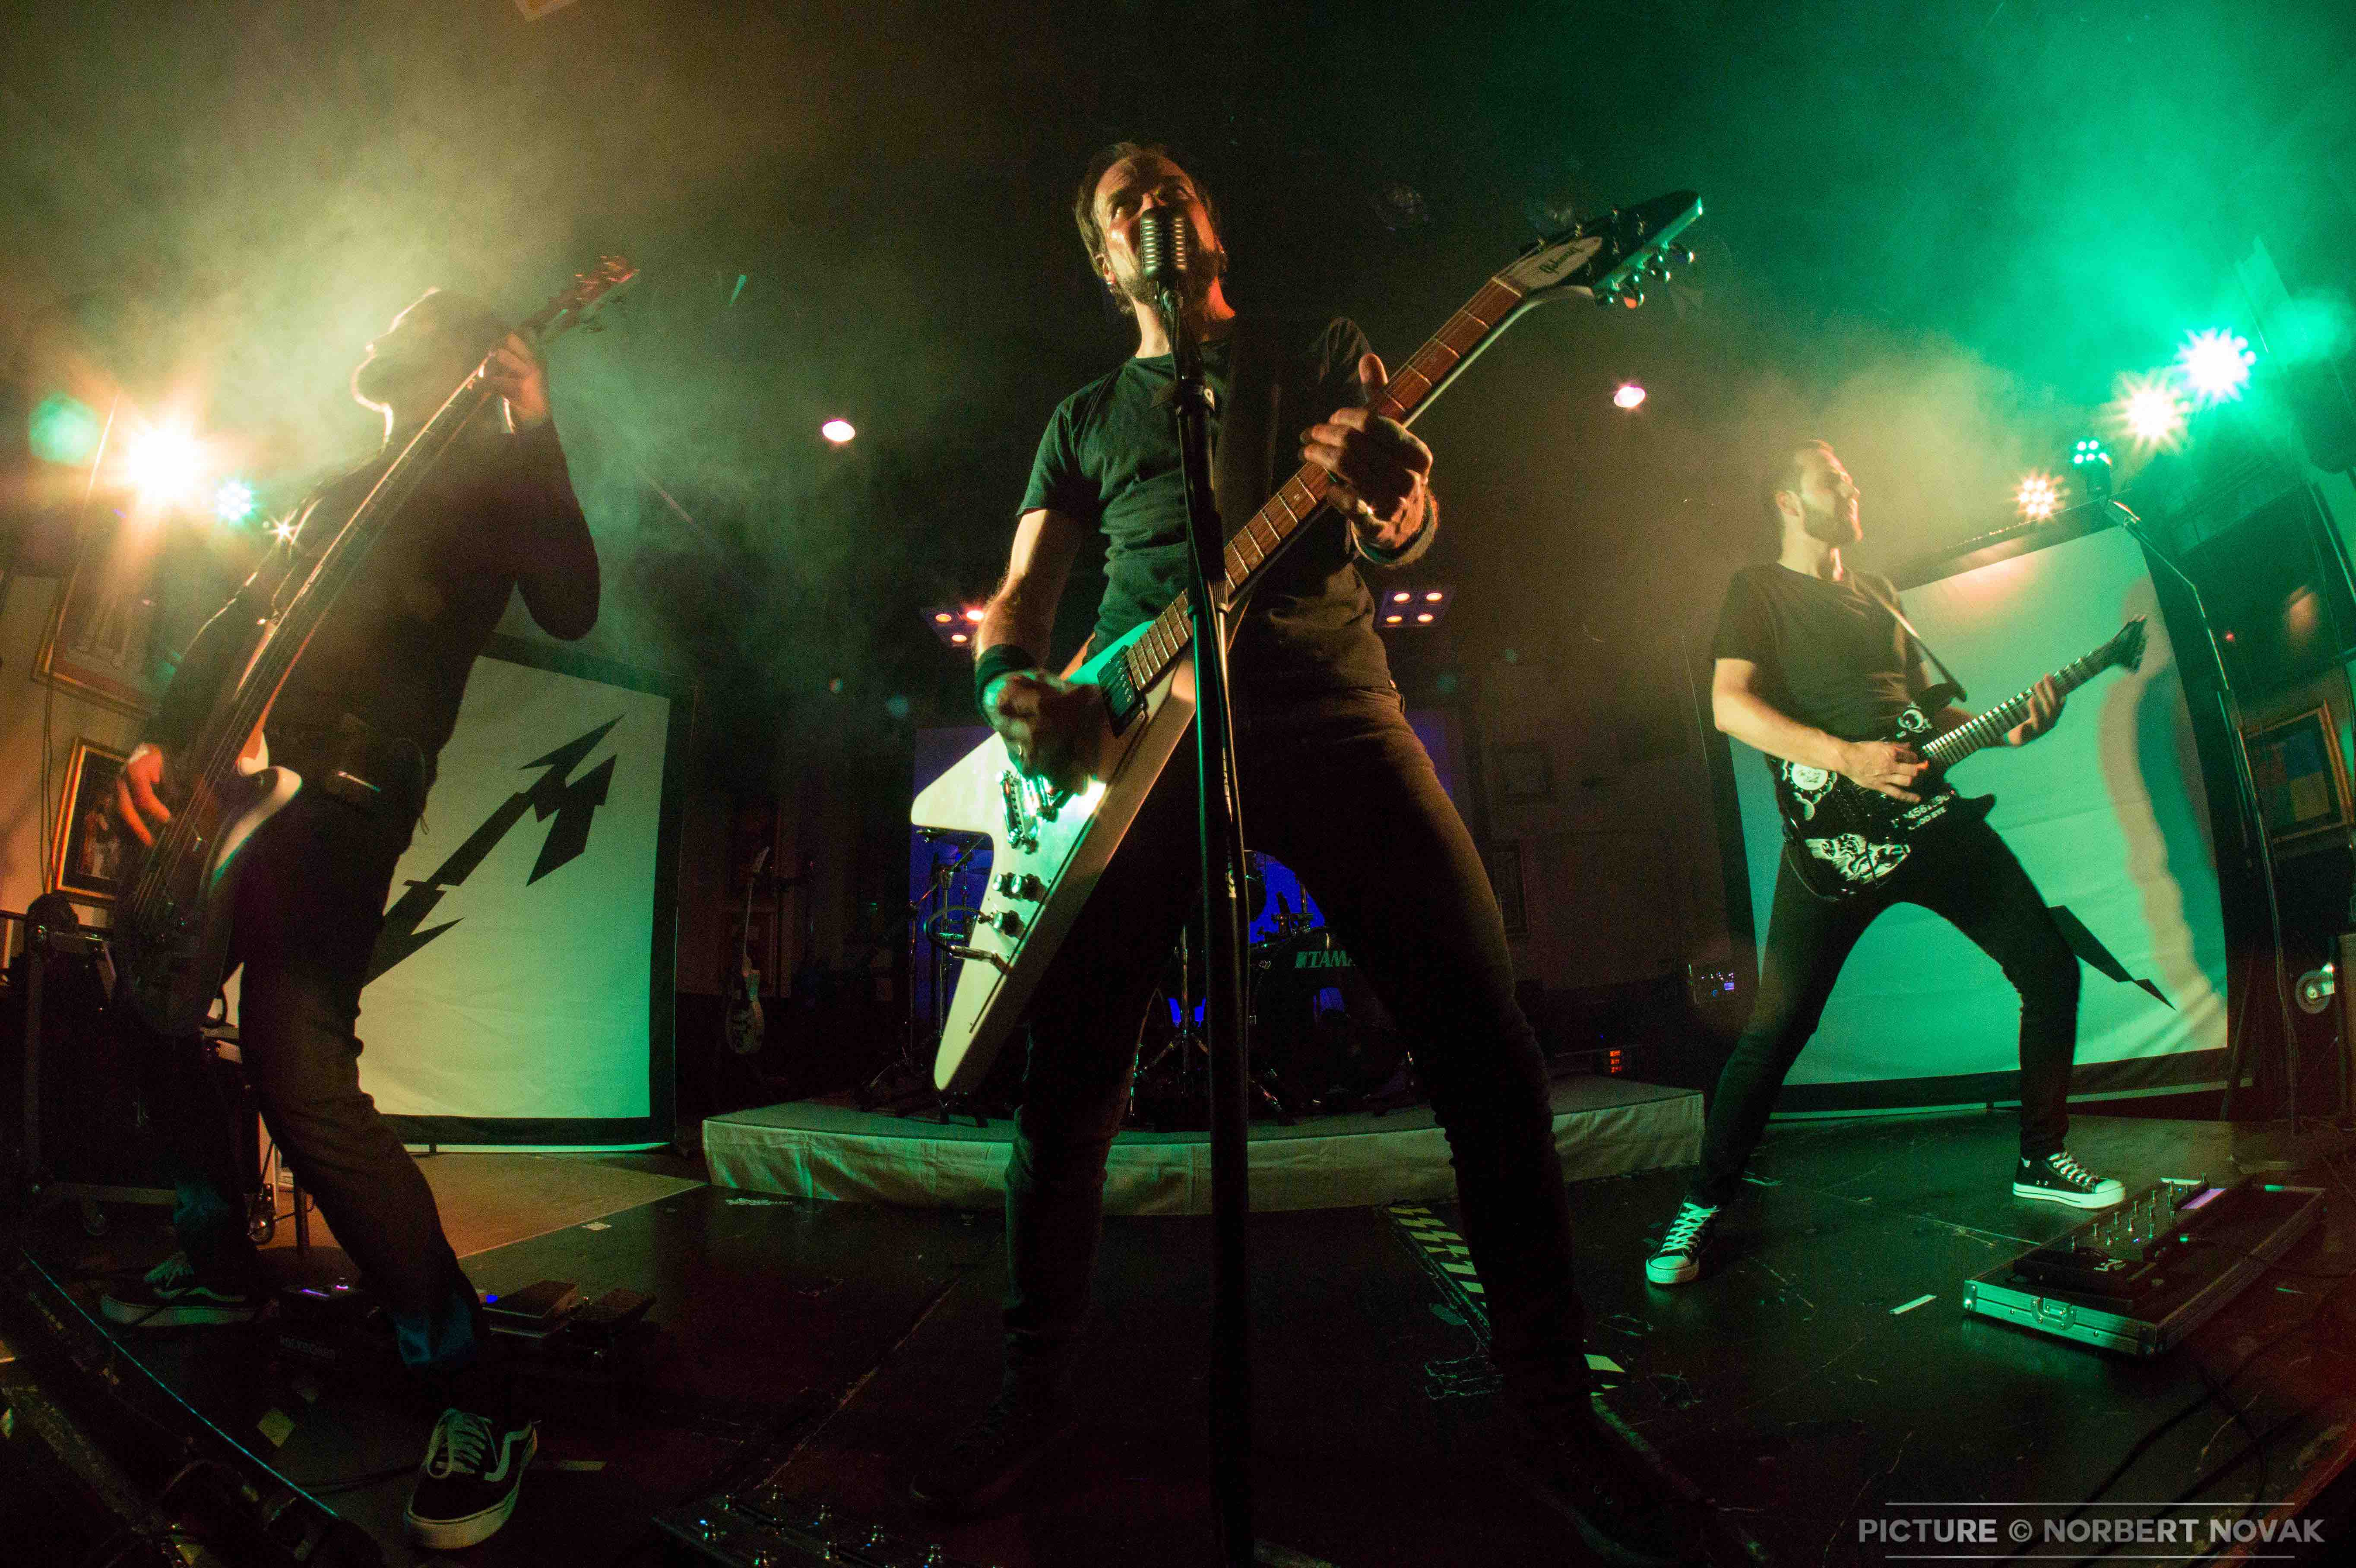 mytallica-2019-hard-rock-cafe-cologne-official-pre-party-fan-chapter-white-flying-v-hetfield